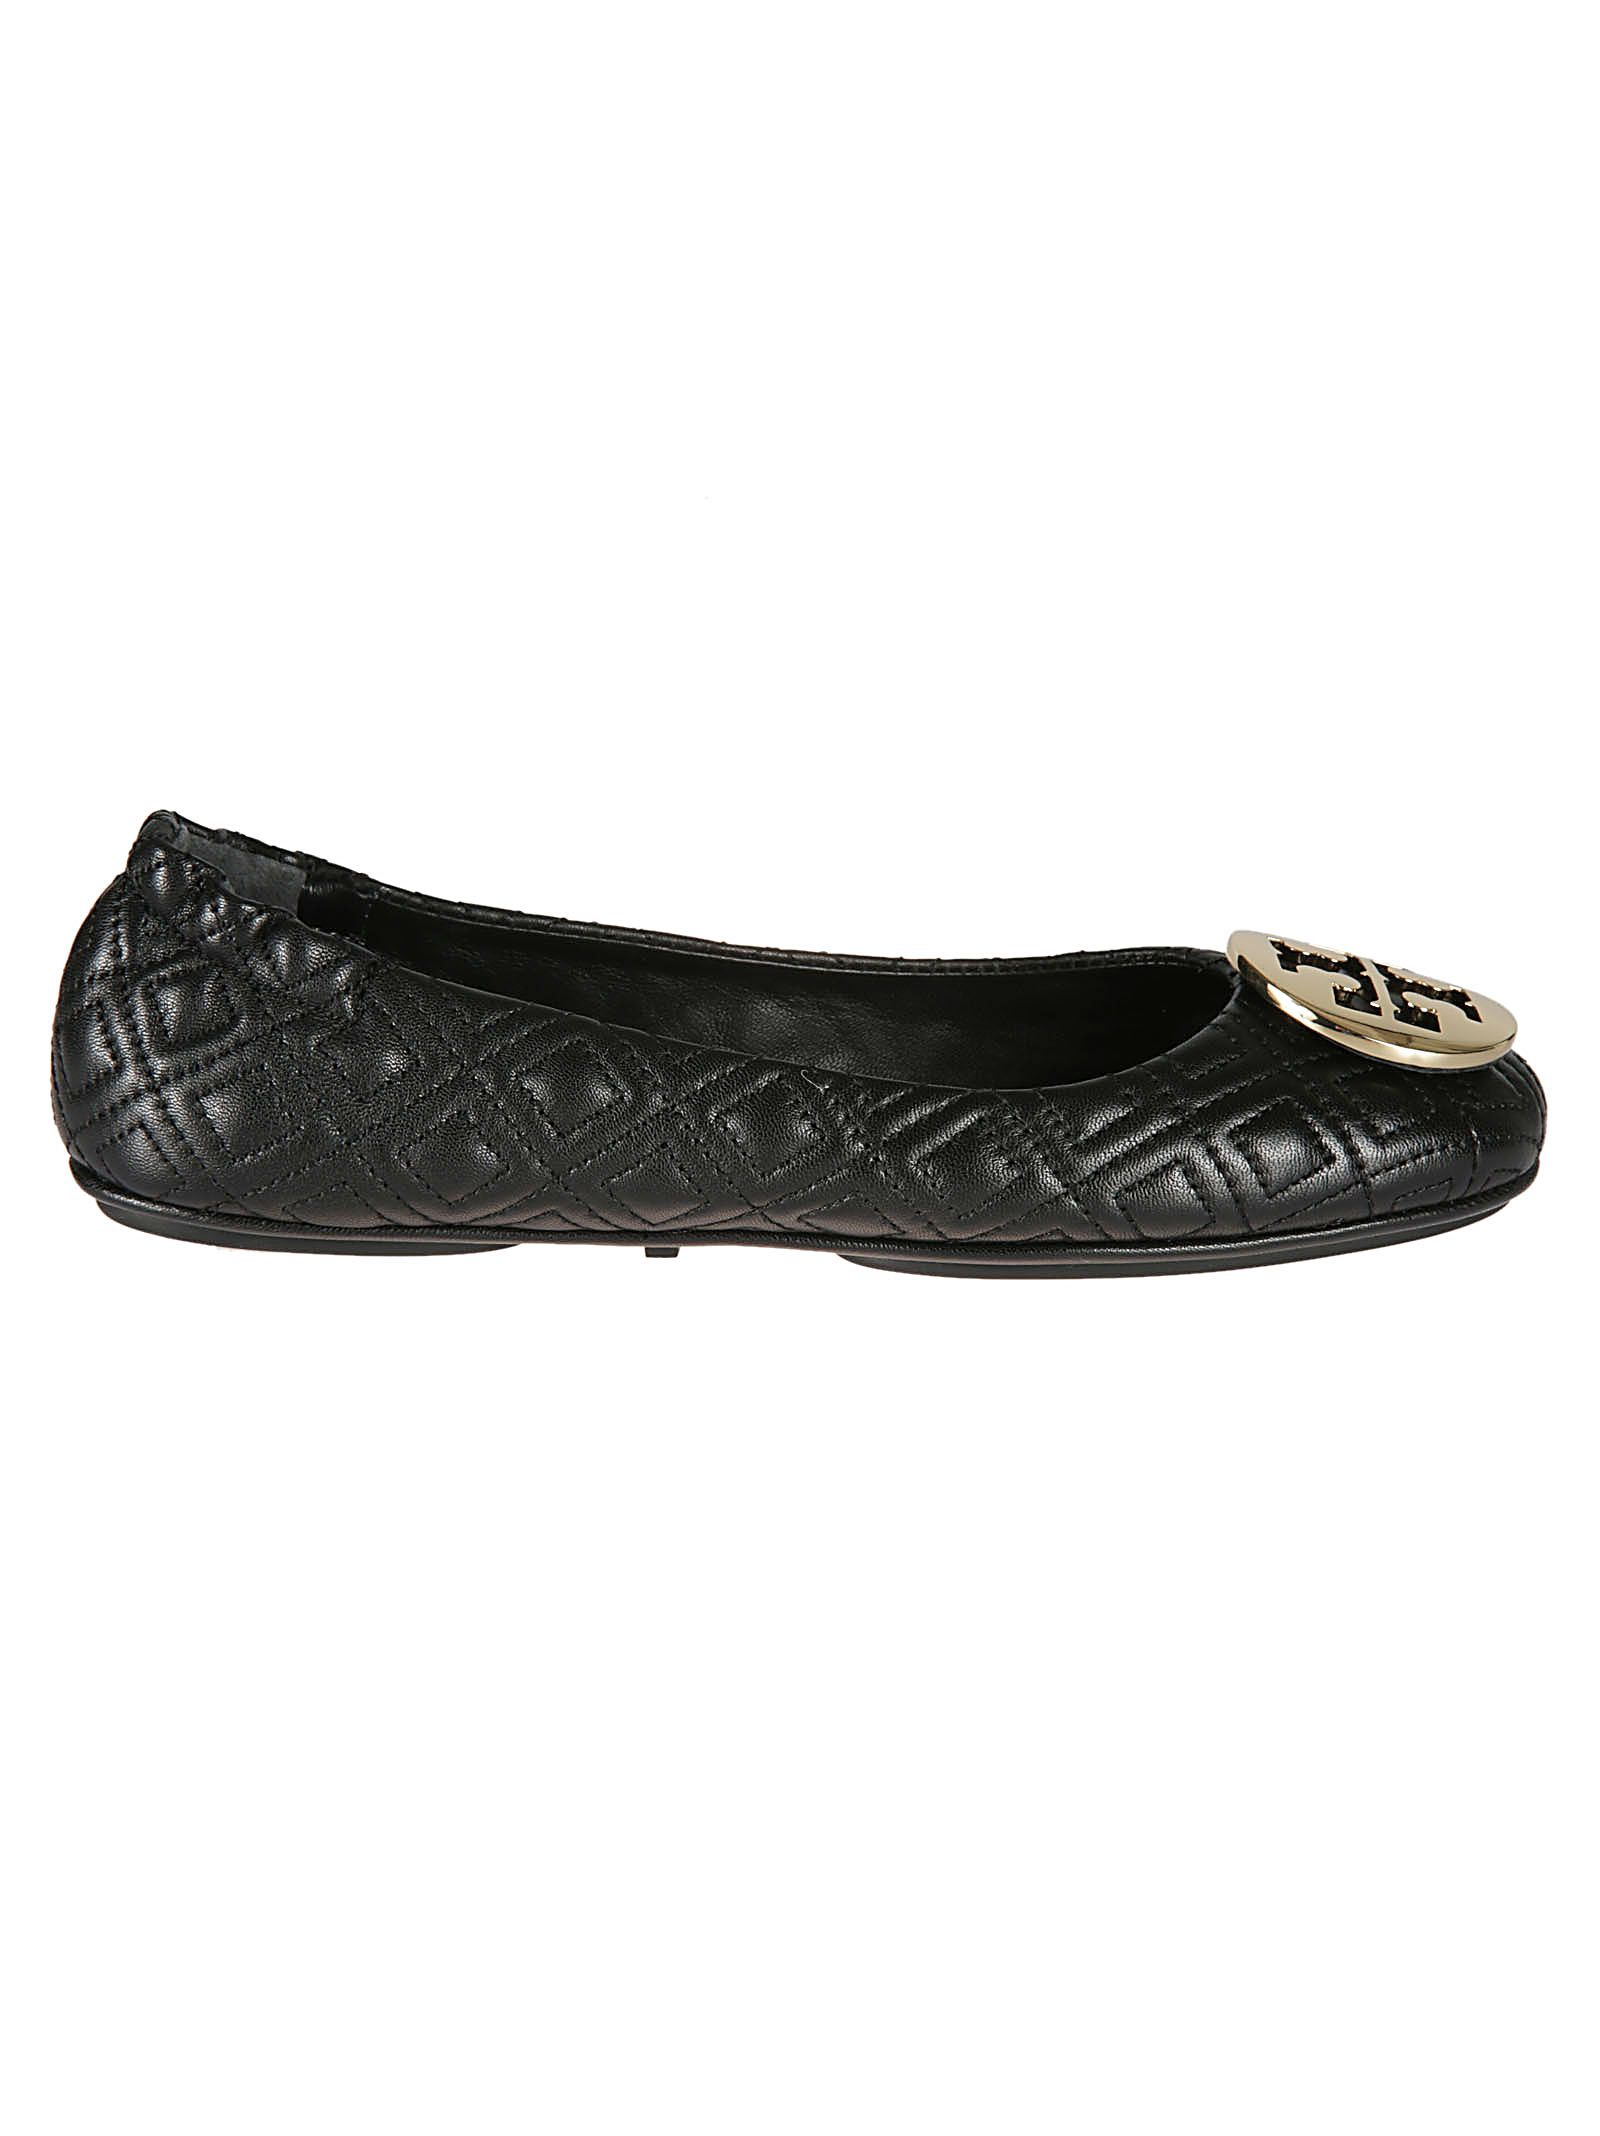 Tory Burch Quilted Logo Ballerinas